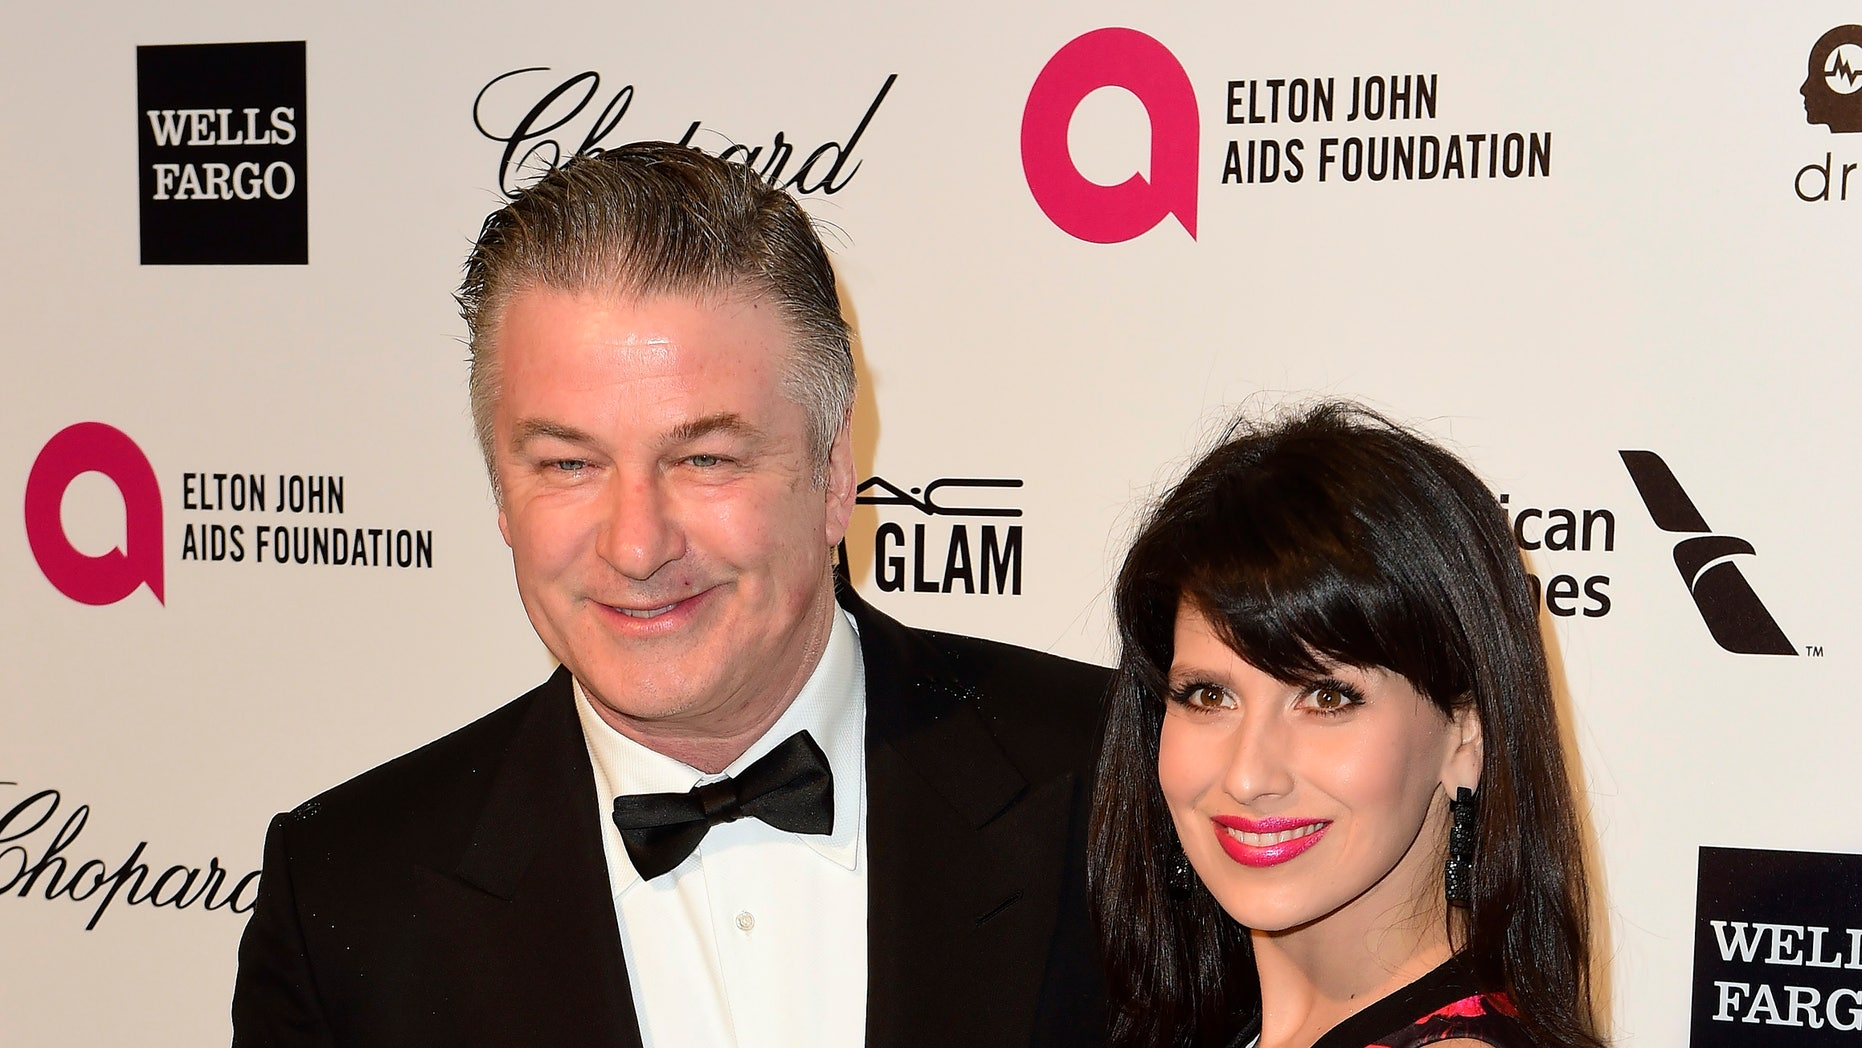 February 22, 2015. Actor Alec Baldwin and his wife Hilaria Thomas arrive at the 2015 Elton John AIDS Foundation Oscar Party in West Hollywood, California.